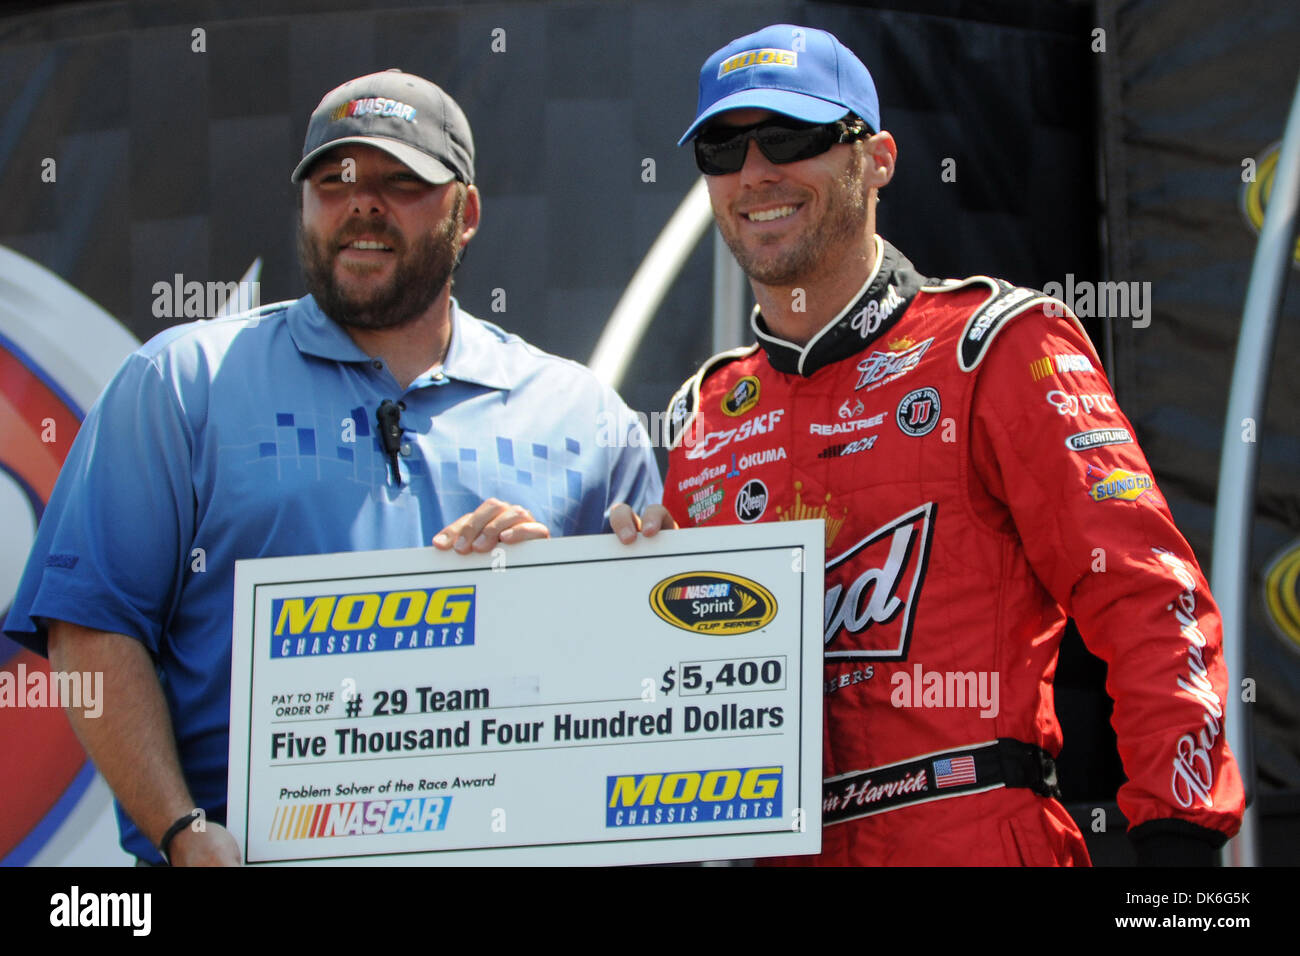 June 5, 2011 - Kansas City, Kansas, U.S - Kevin Harvick won the Moog Chassis Problem Solver of the Race Award at the STP 400 held at the Kansas Speedway. (Credit Image: © Steven Branscombe/Southcreek Global/ZUMApress.com) - Stock Image